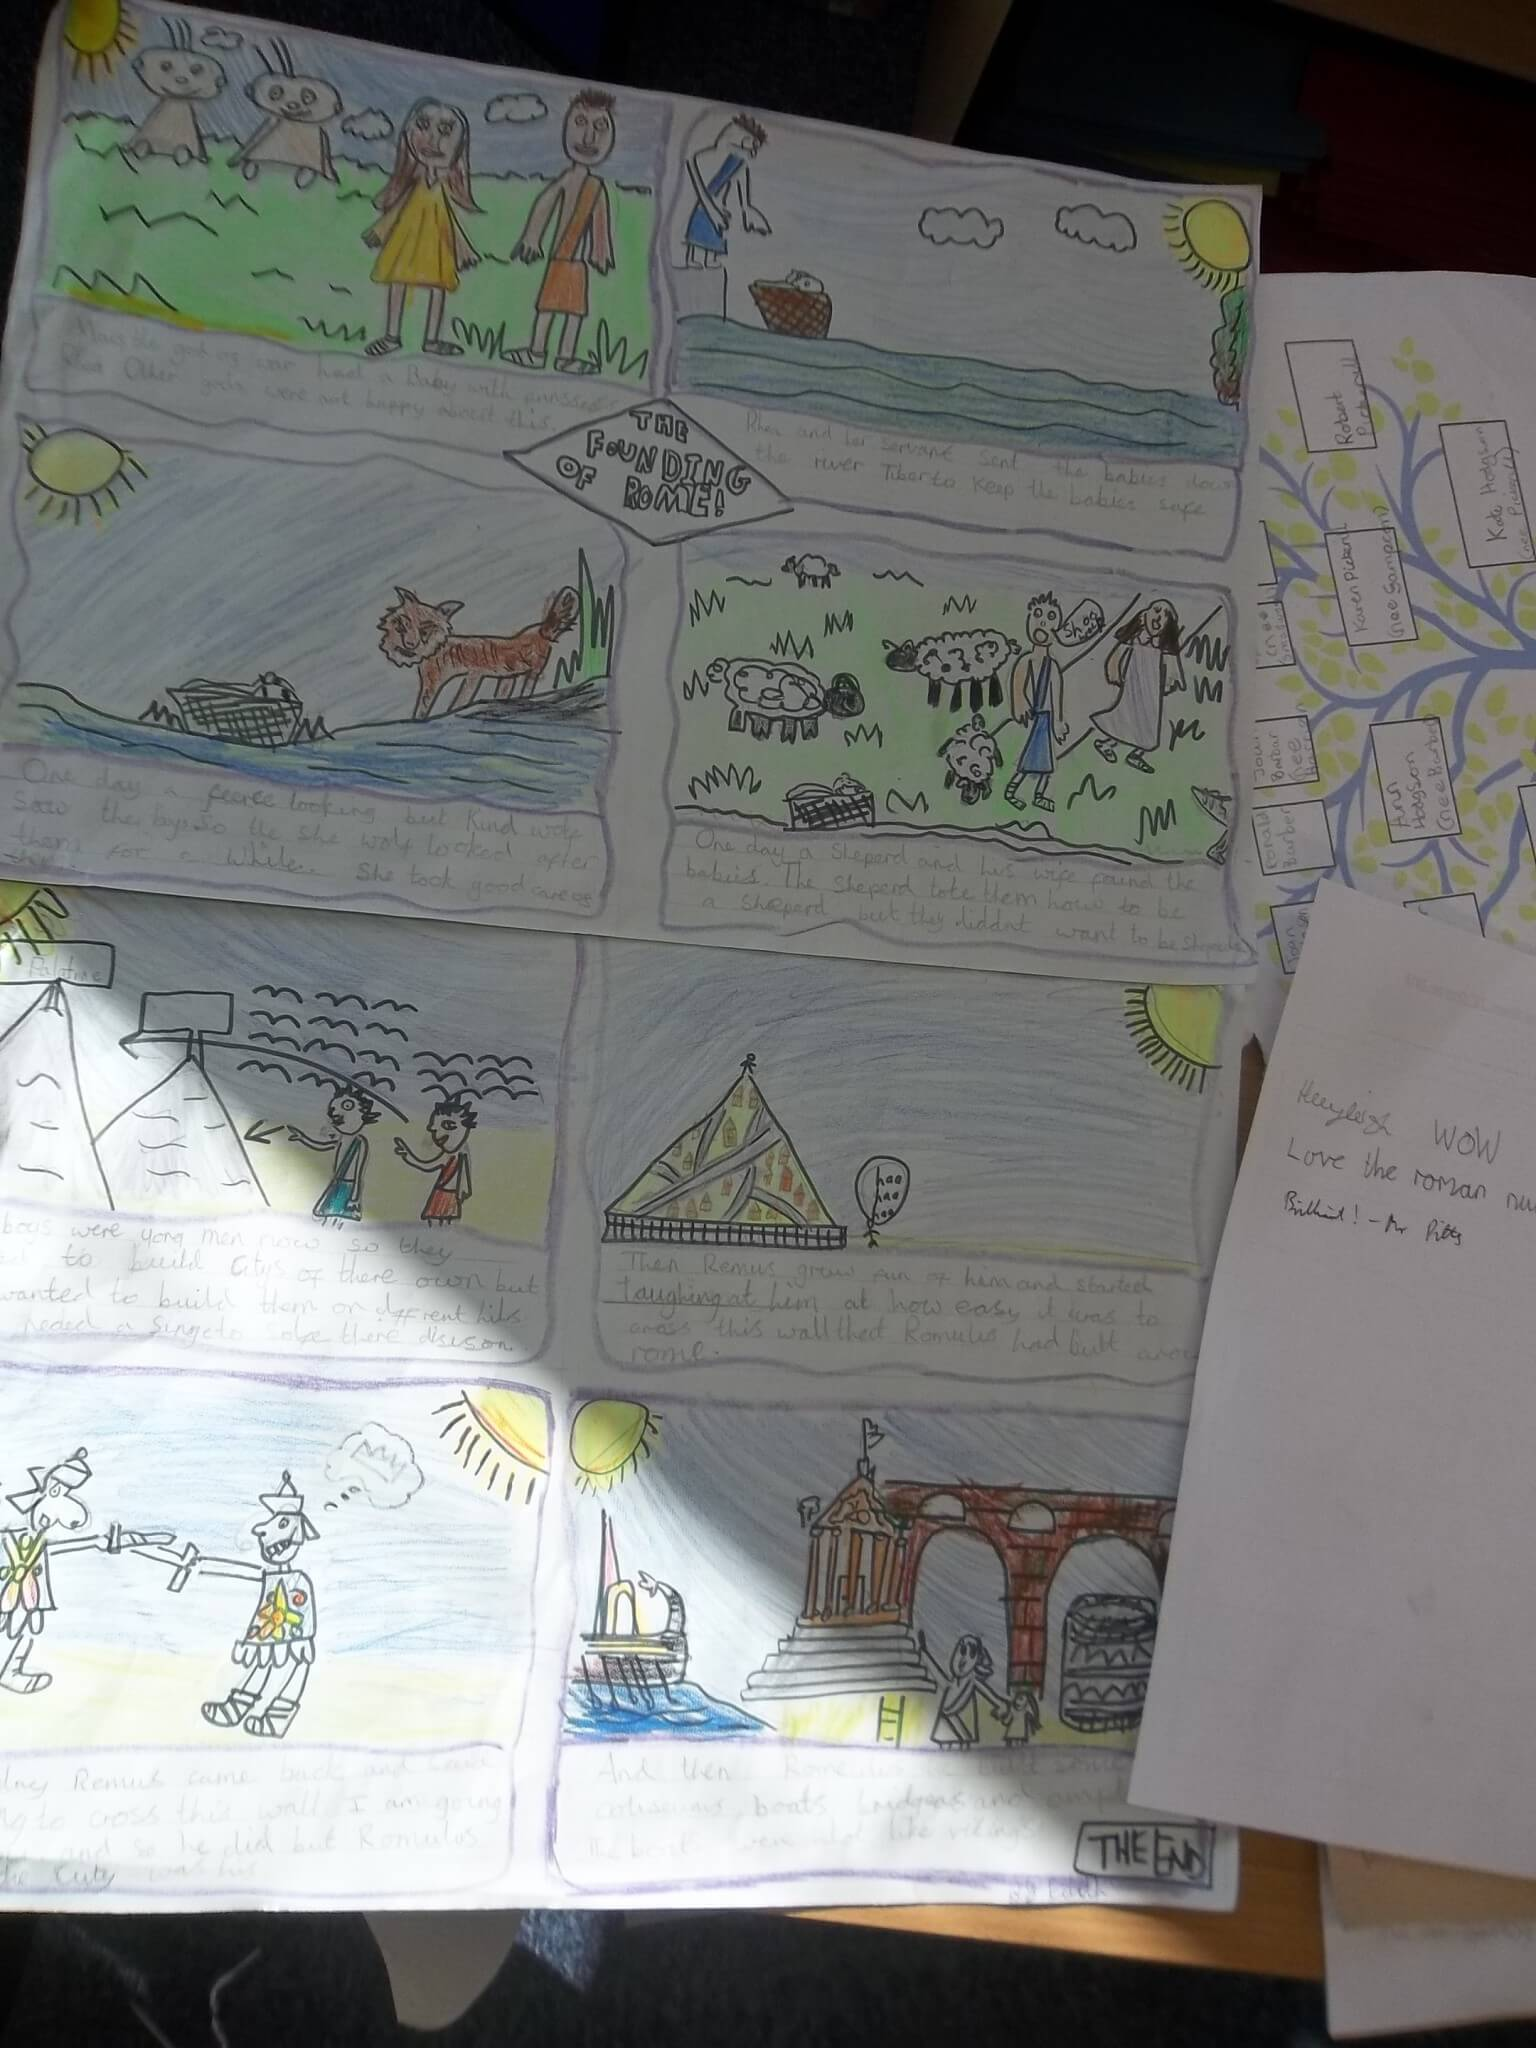 Key stage 2 homework gallery afternoon gomersal st marys cec 1002572 gumiabroncs Image collections